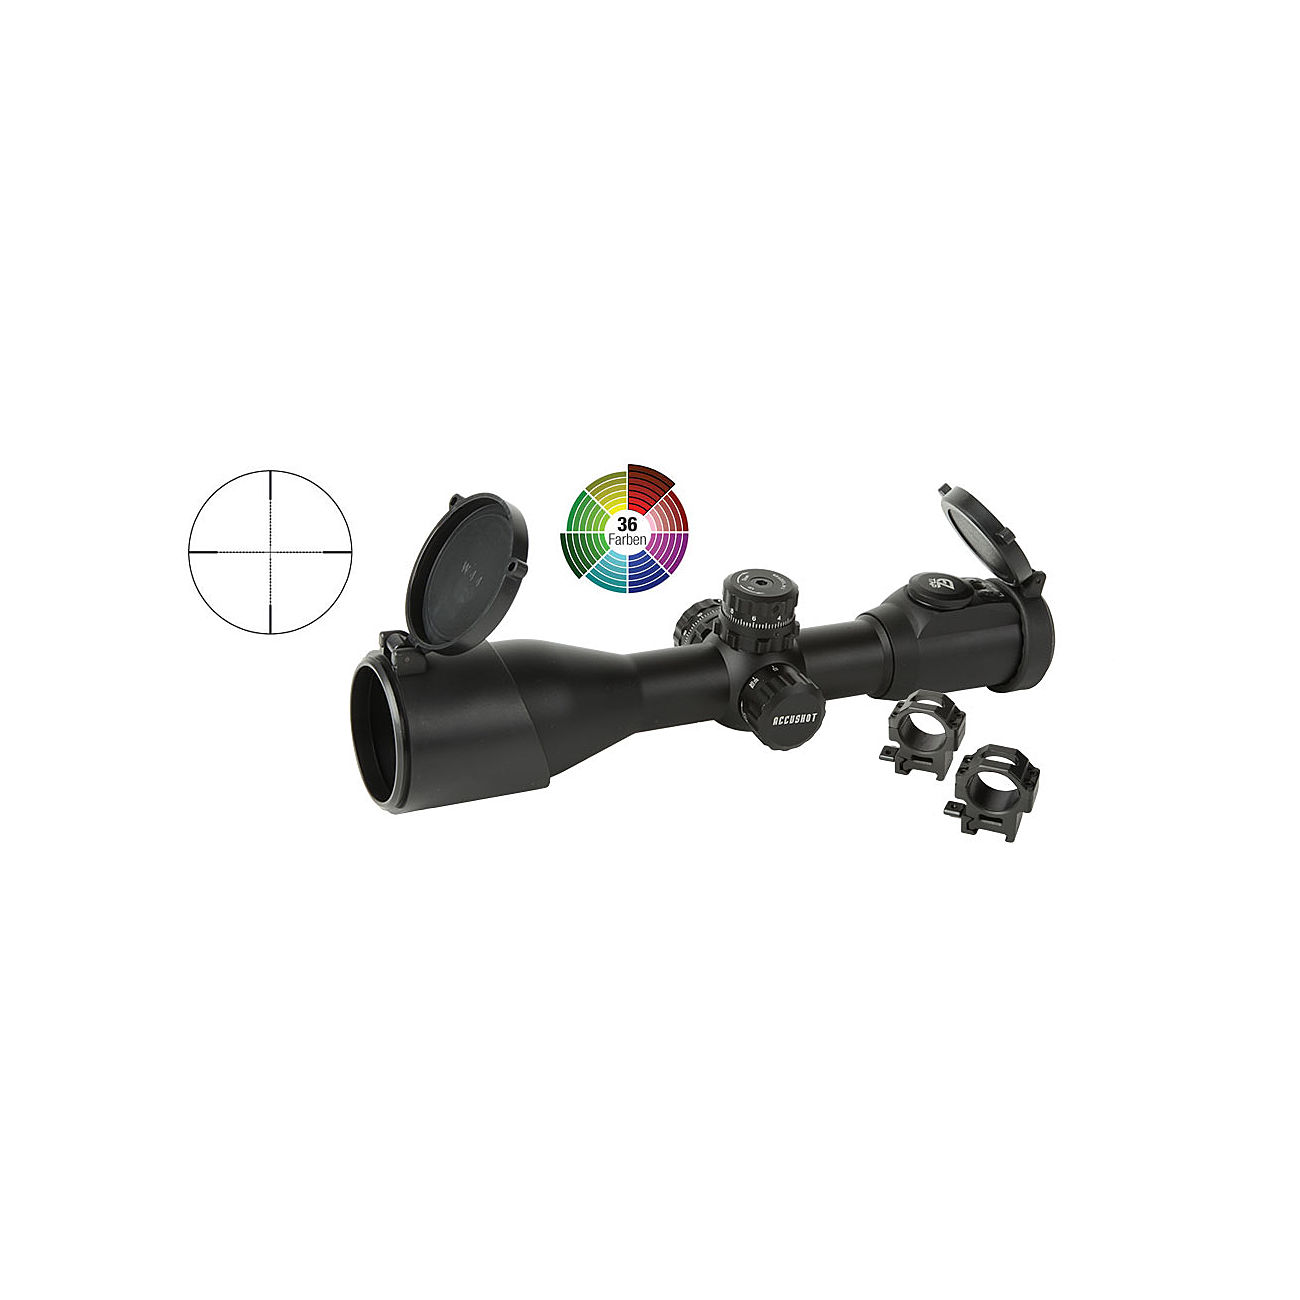 utg 30mm swat 3 12x44 compact ie scope manual